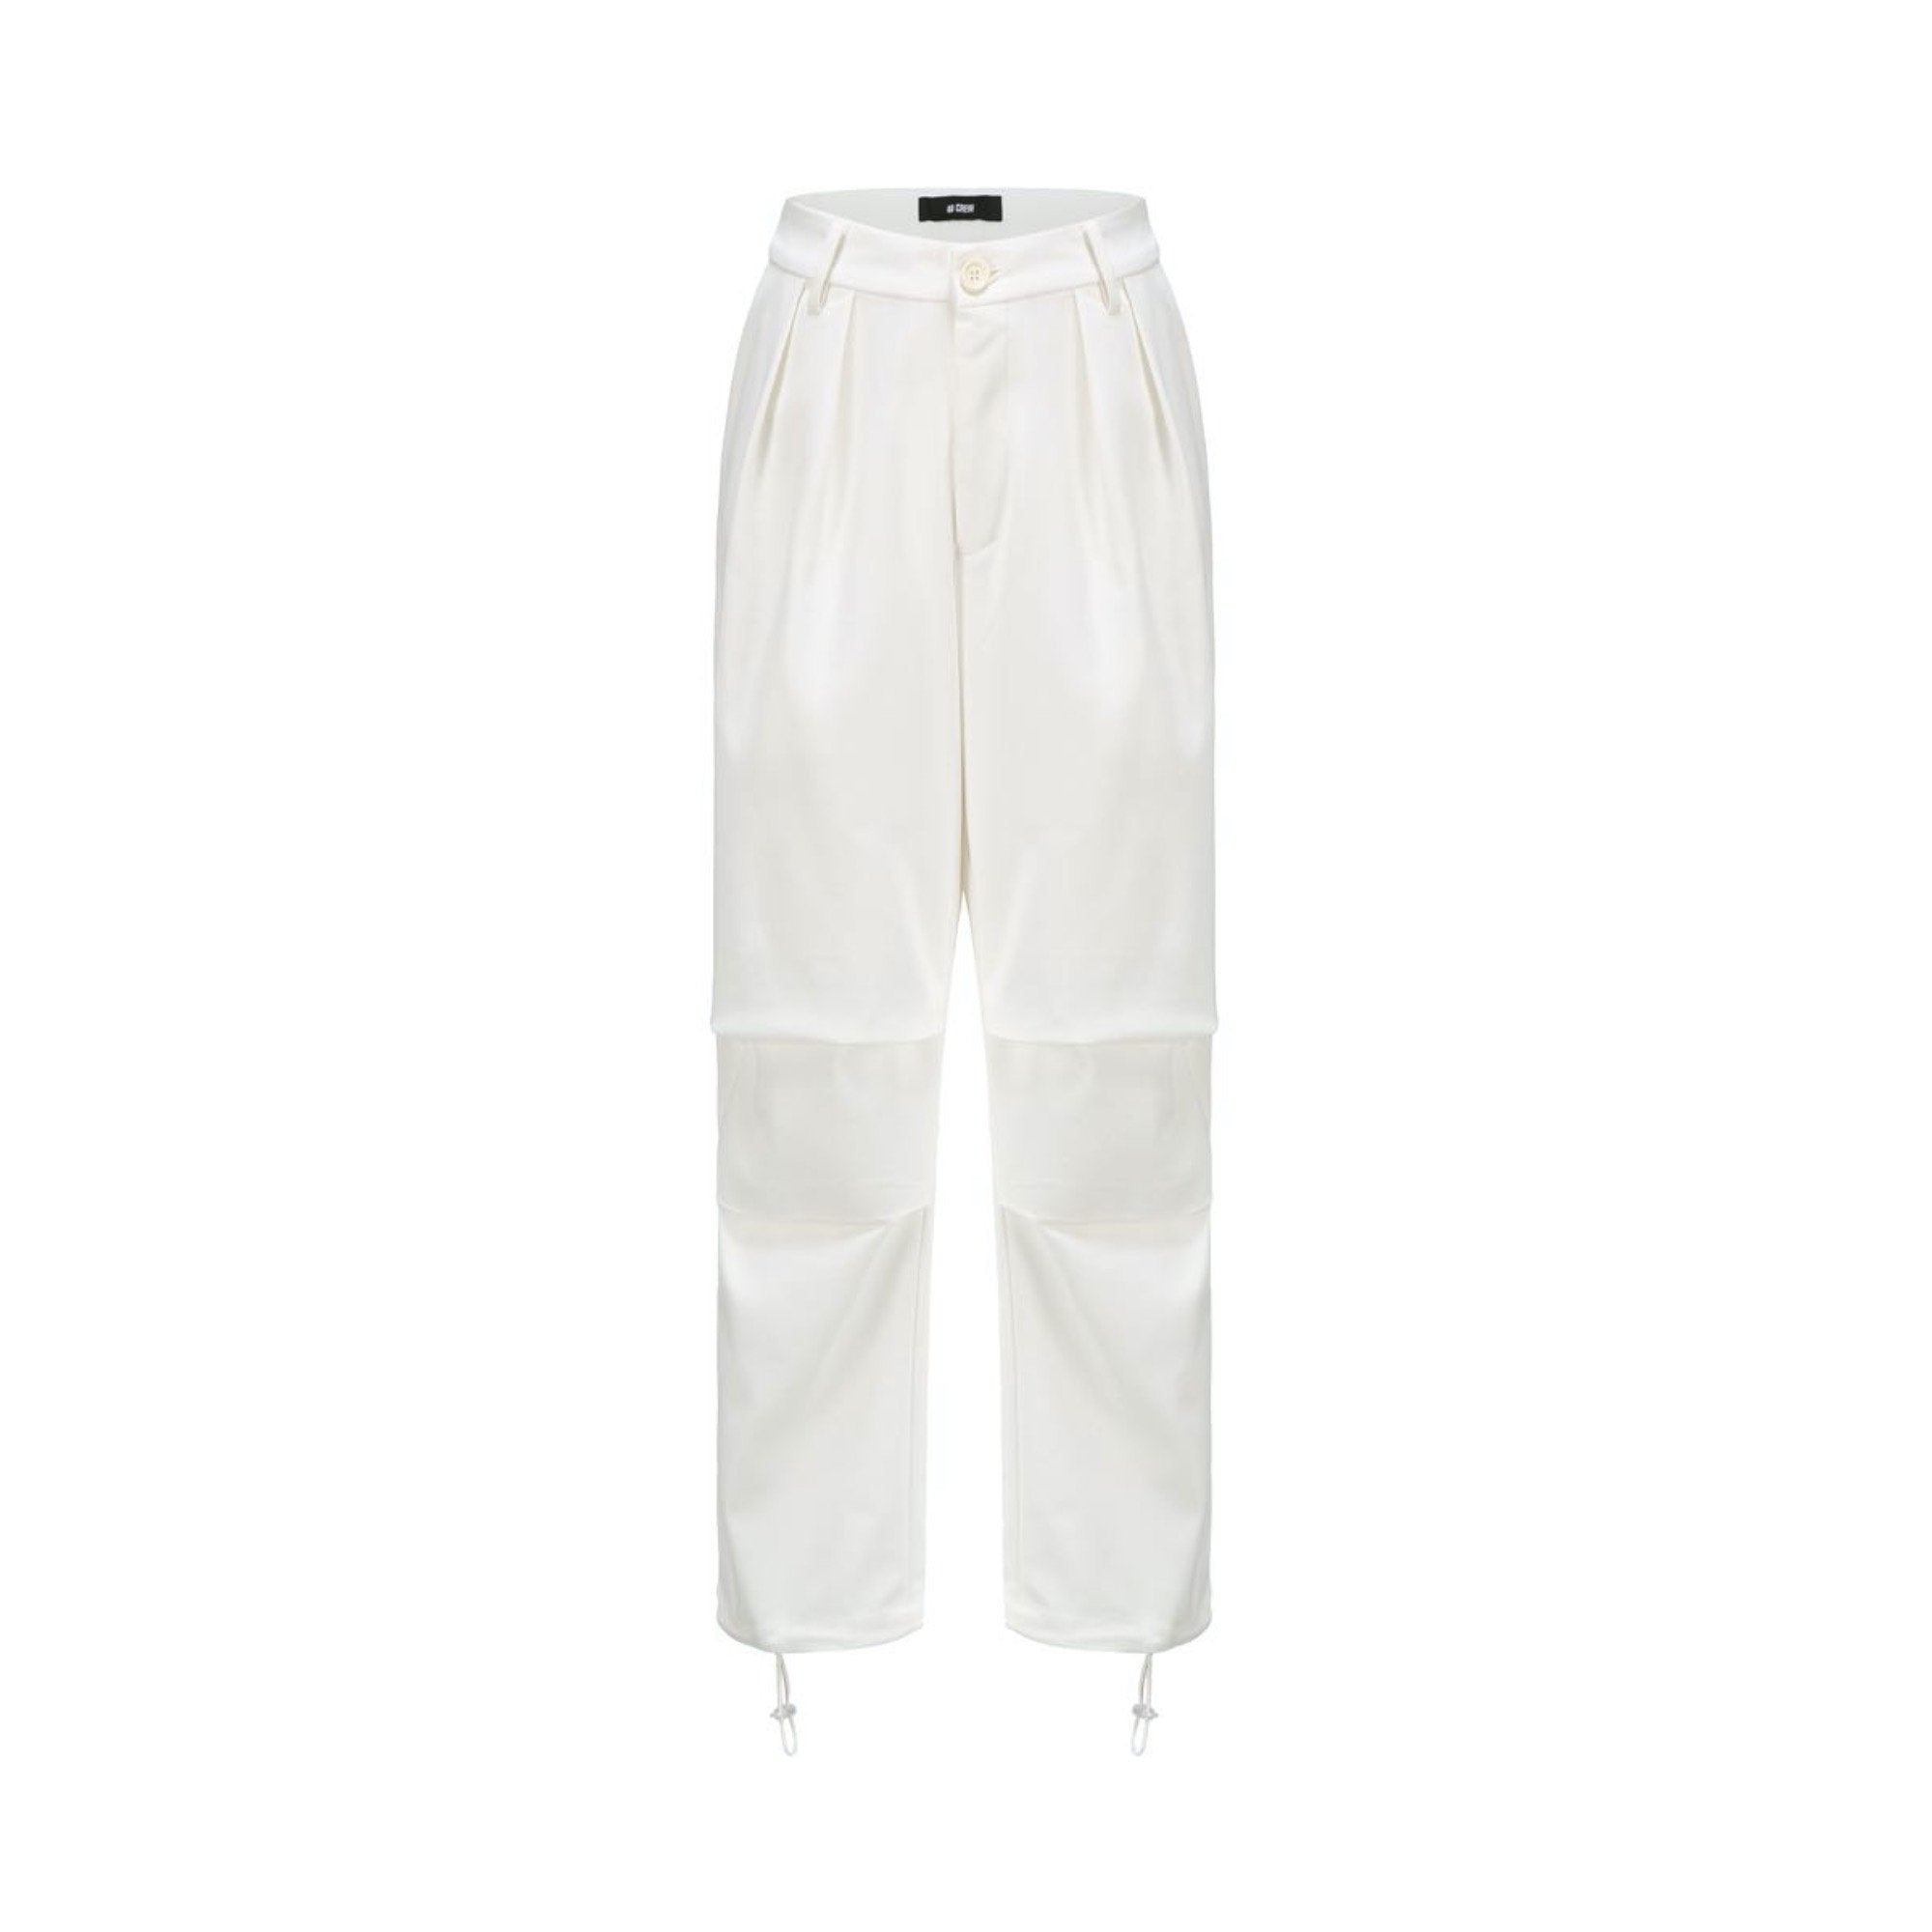 40 CREW White Panelled Suit Pant | MADA IN CHINA